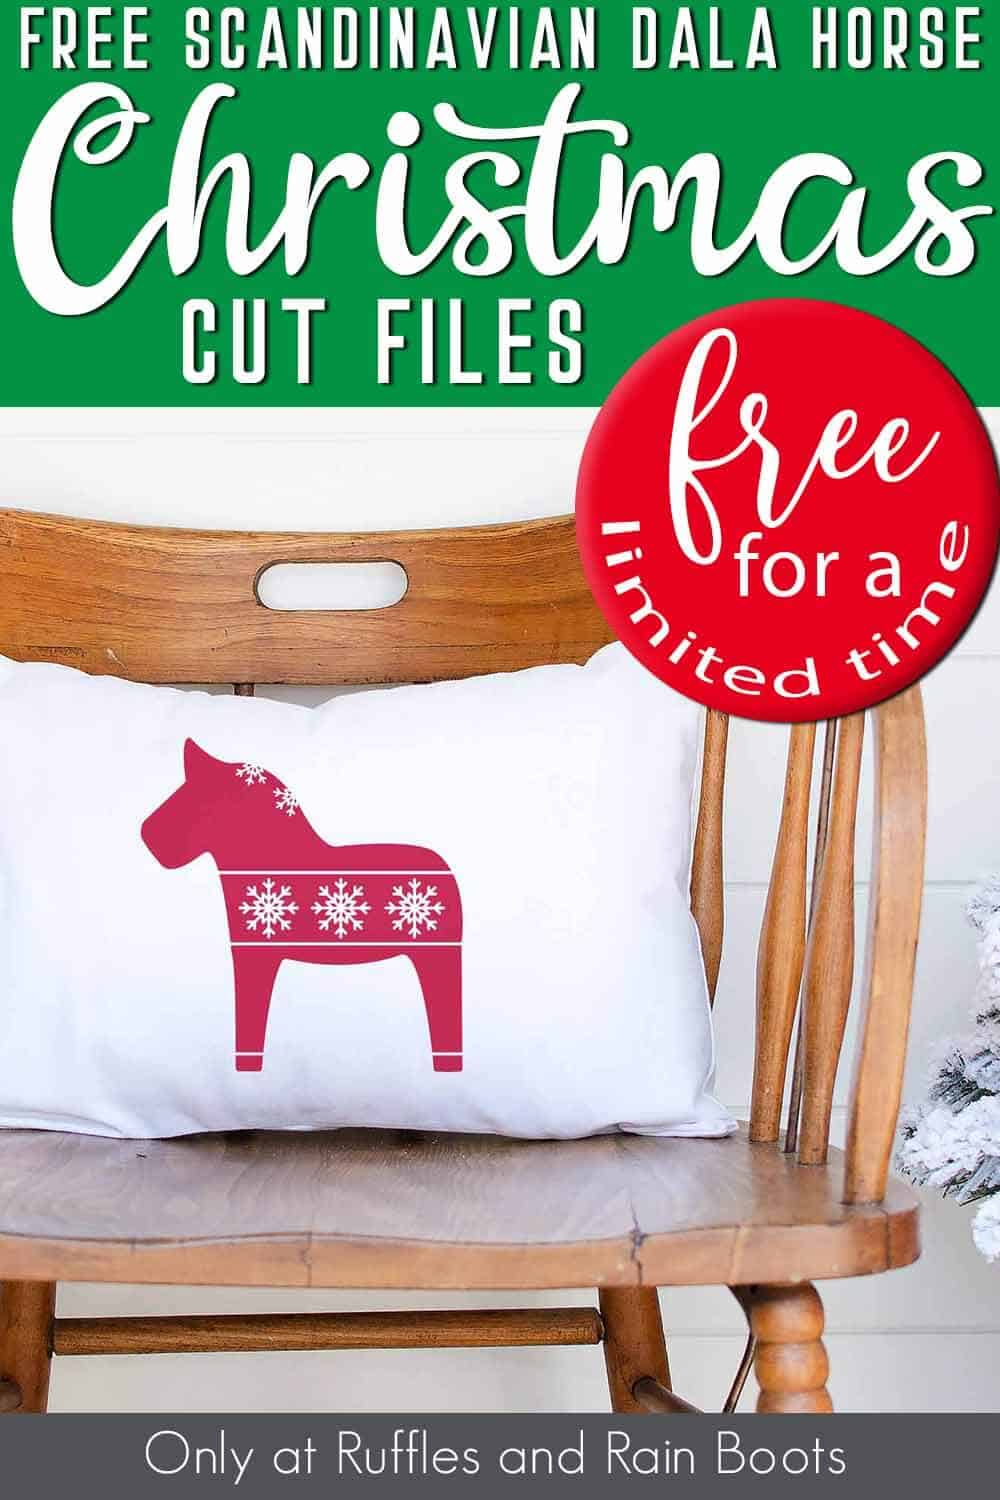 pillow on a chair with the scandinavian dala horse free holiday cut file on it with text which reads free scandinavian dala horse christmas cut files free for a limited time